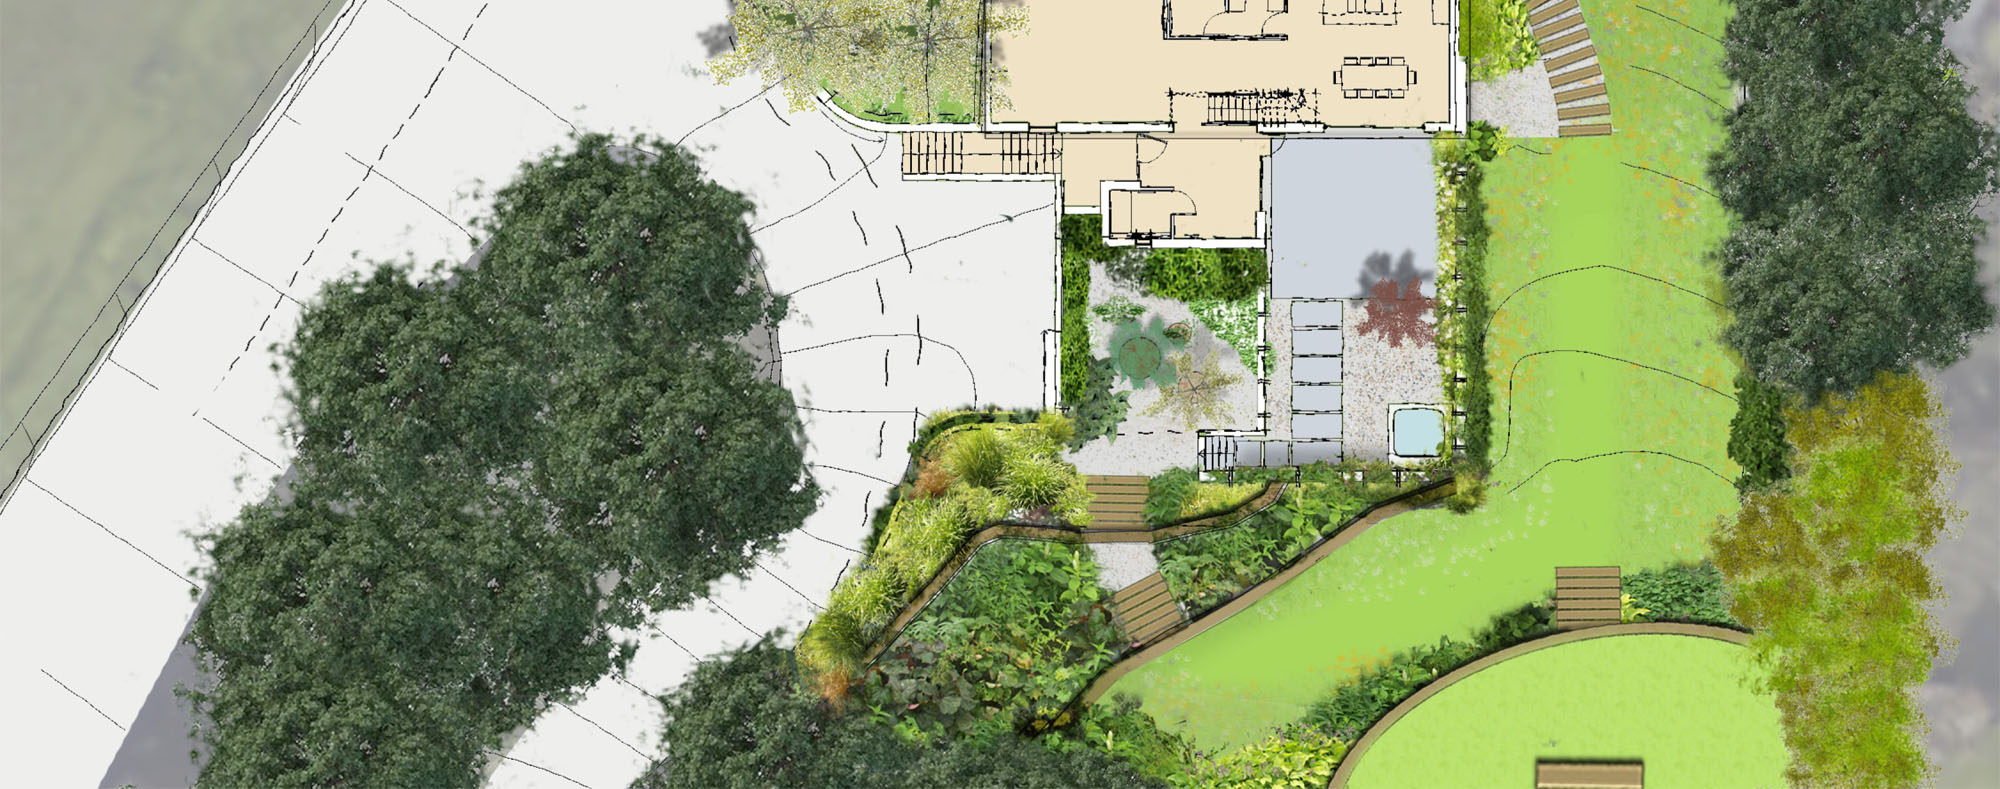 Planting-plan-Dunsford-Hill-Revision-A-for-web-1